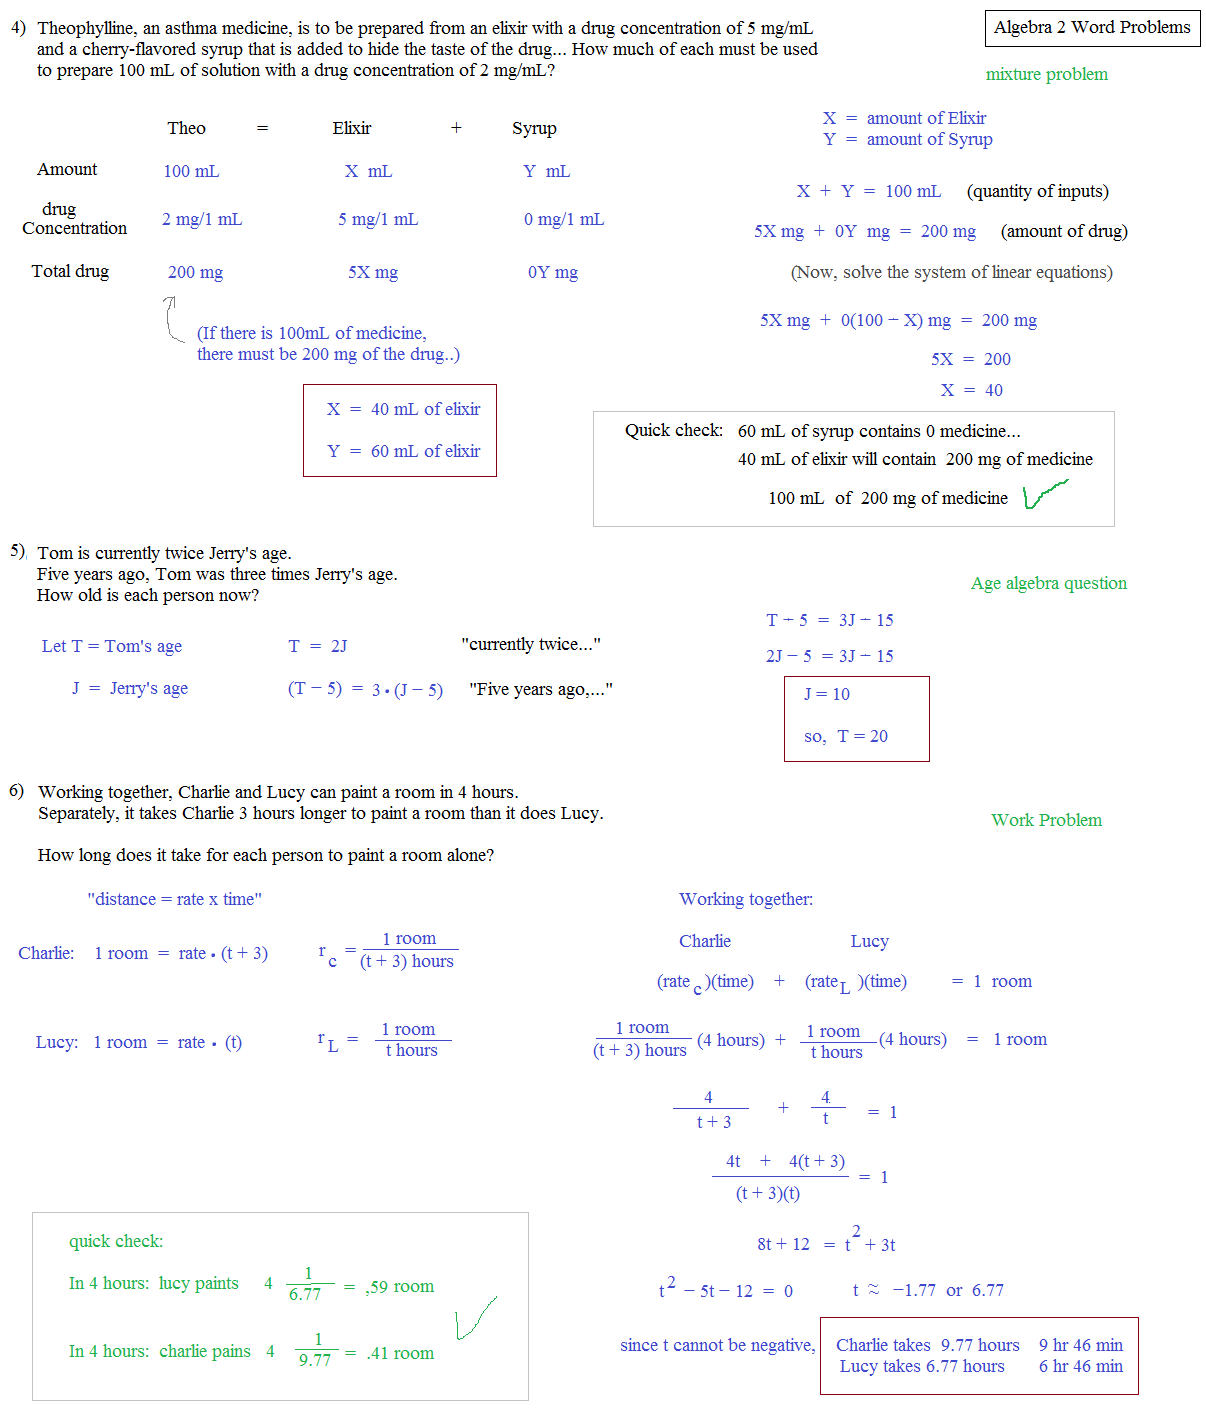 linear algebra problems This is a basic subject on matrix theory and linear algebra emphasis is given to topics that will be useful in other disciplines, including systems of equations, vector spaces, determinants, eigenvalues, similarity, and positive definite matrices.